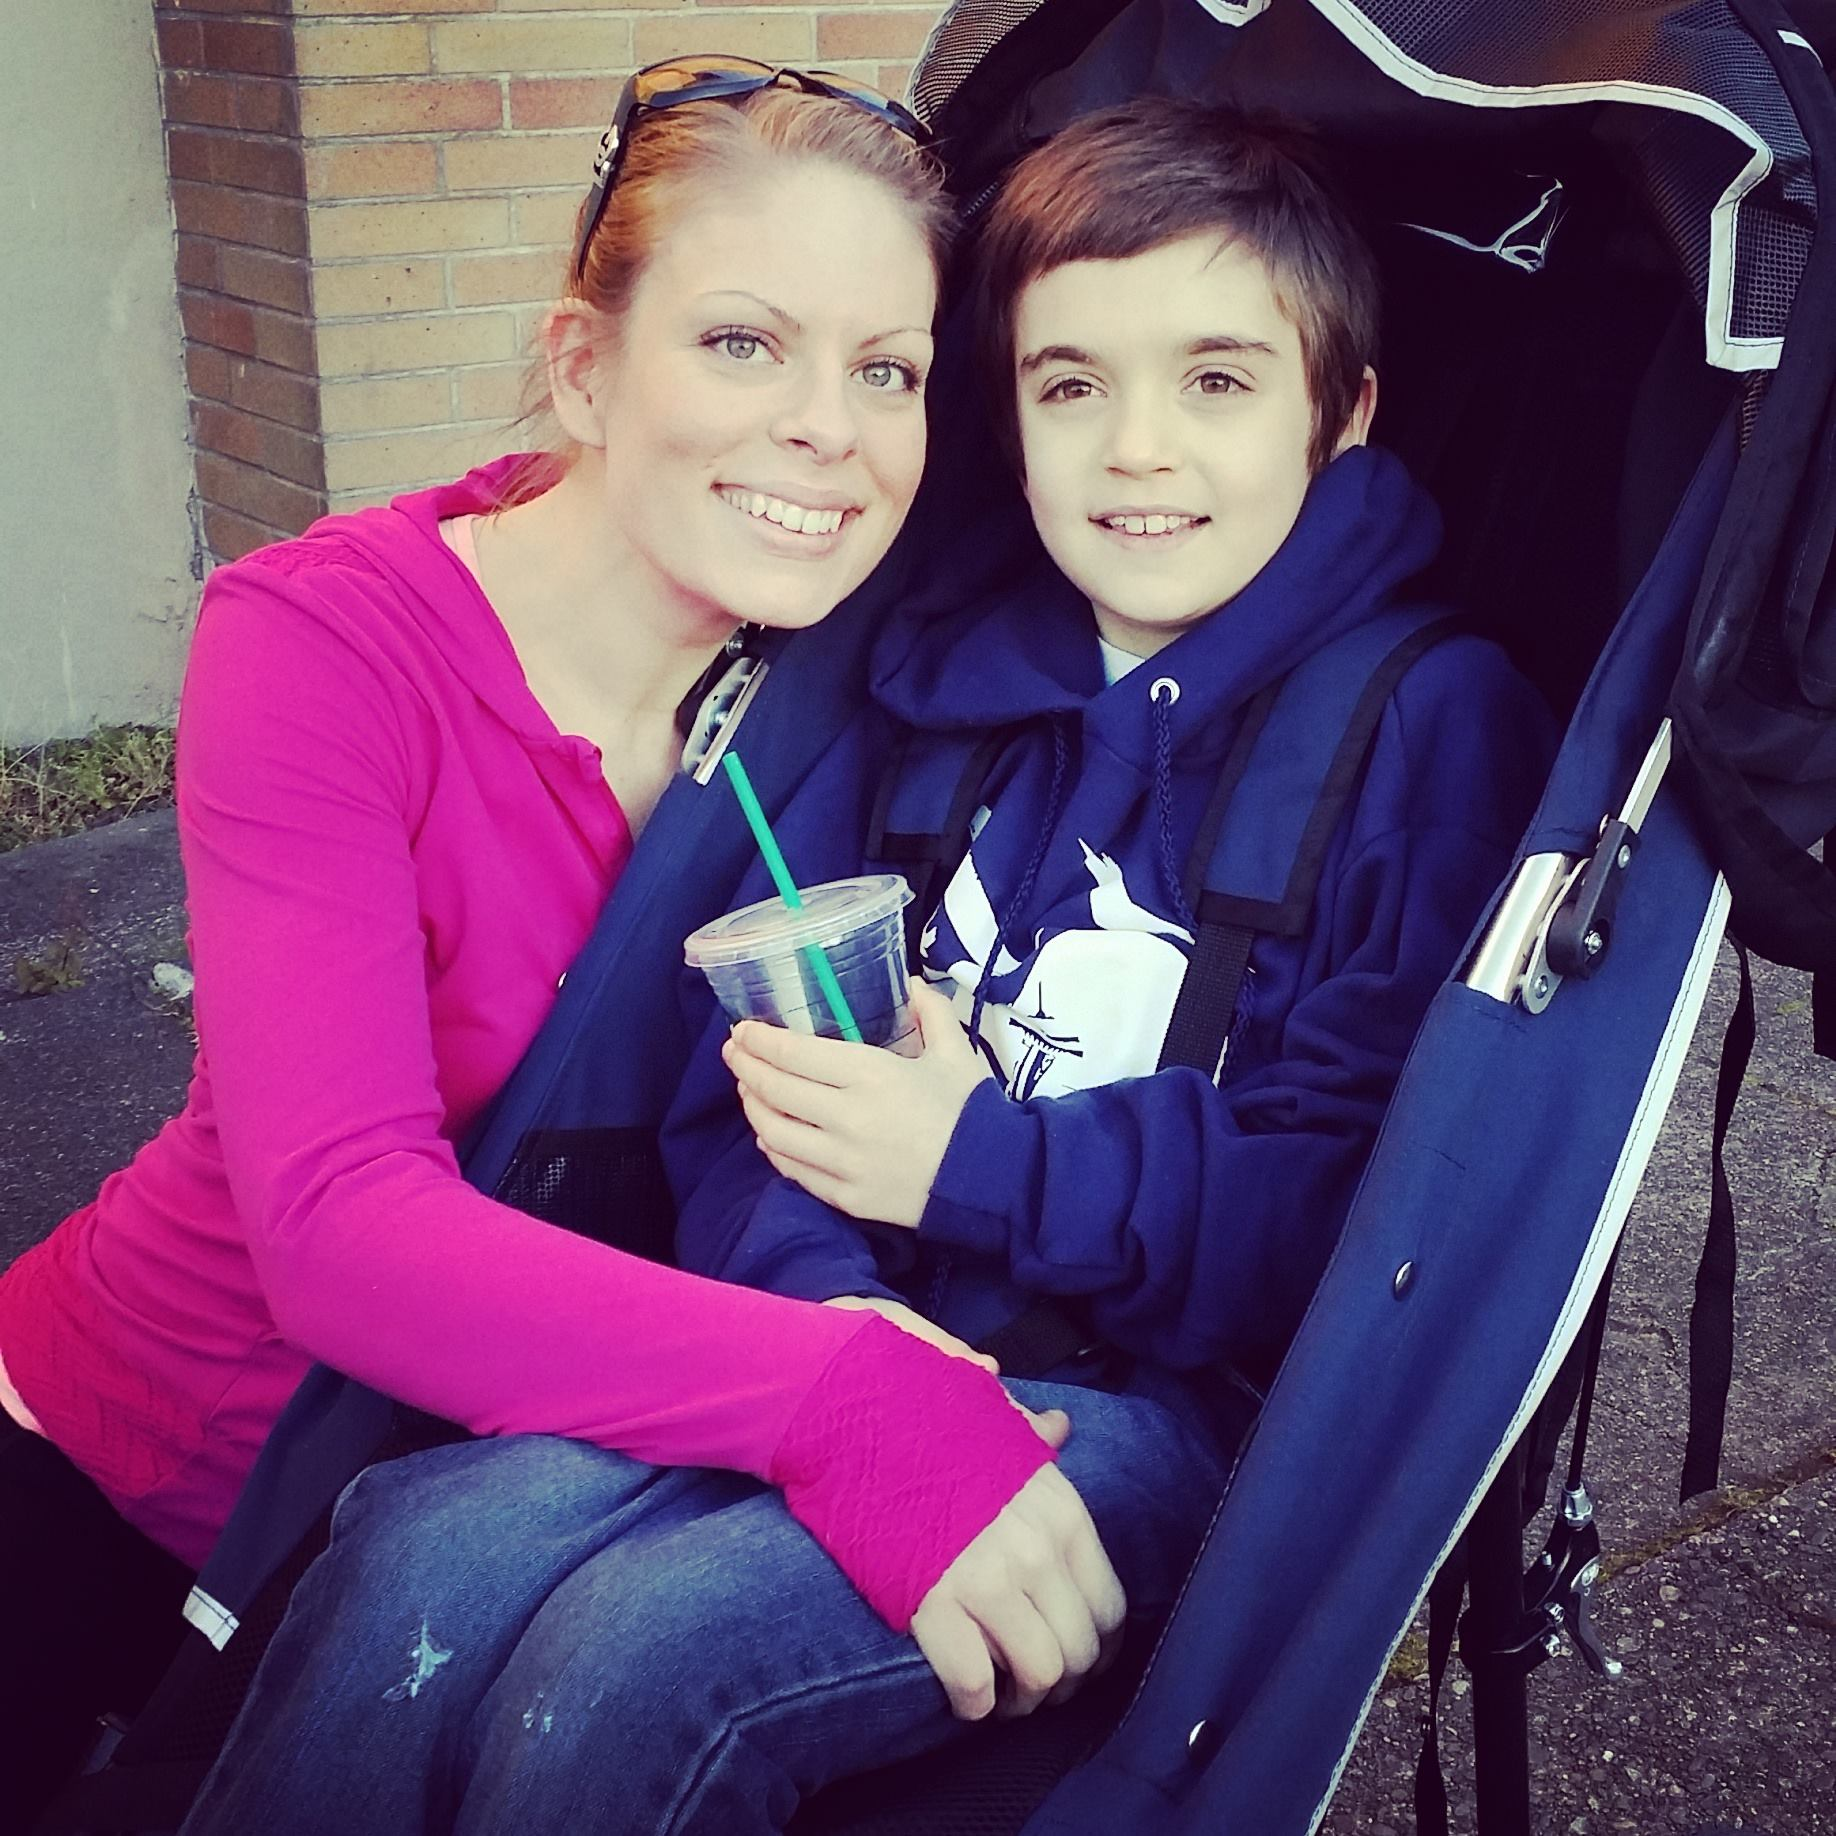 Mom with boy with autism. Do vaccines and Tylenol cause autism? This mom believes that's what happened to her son.